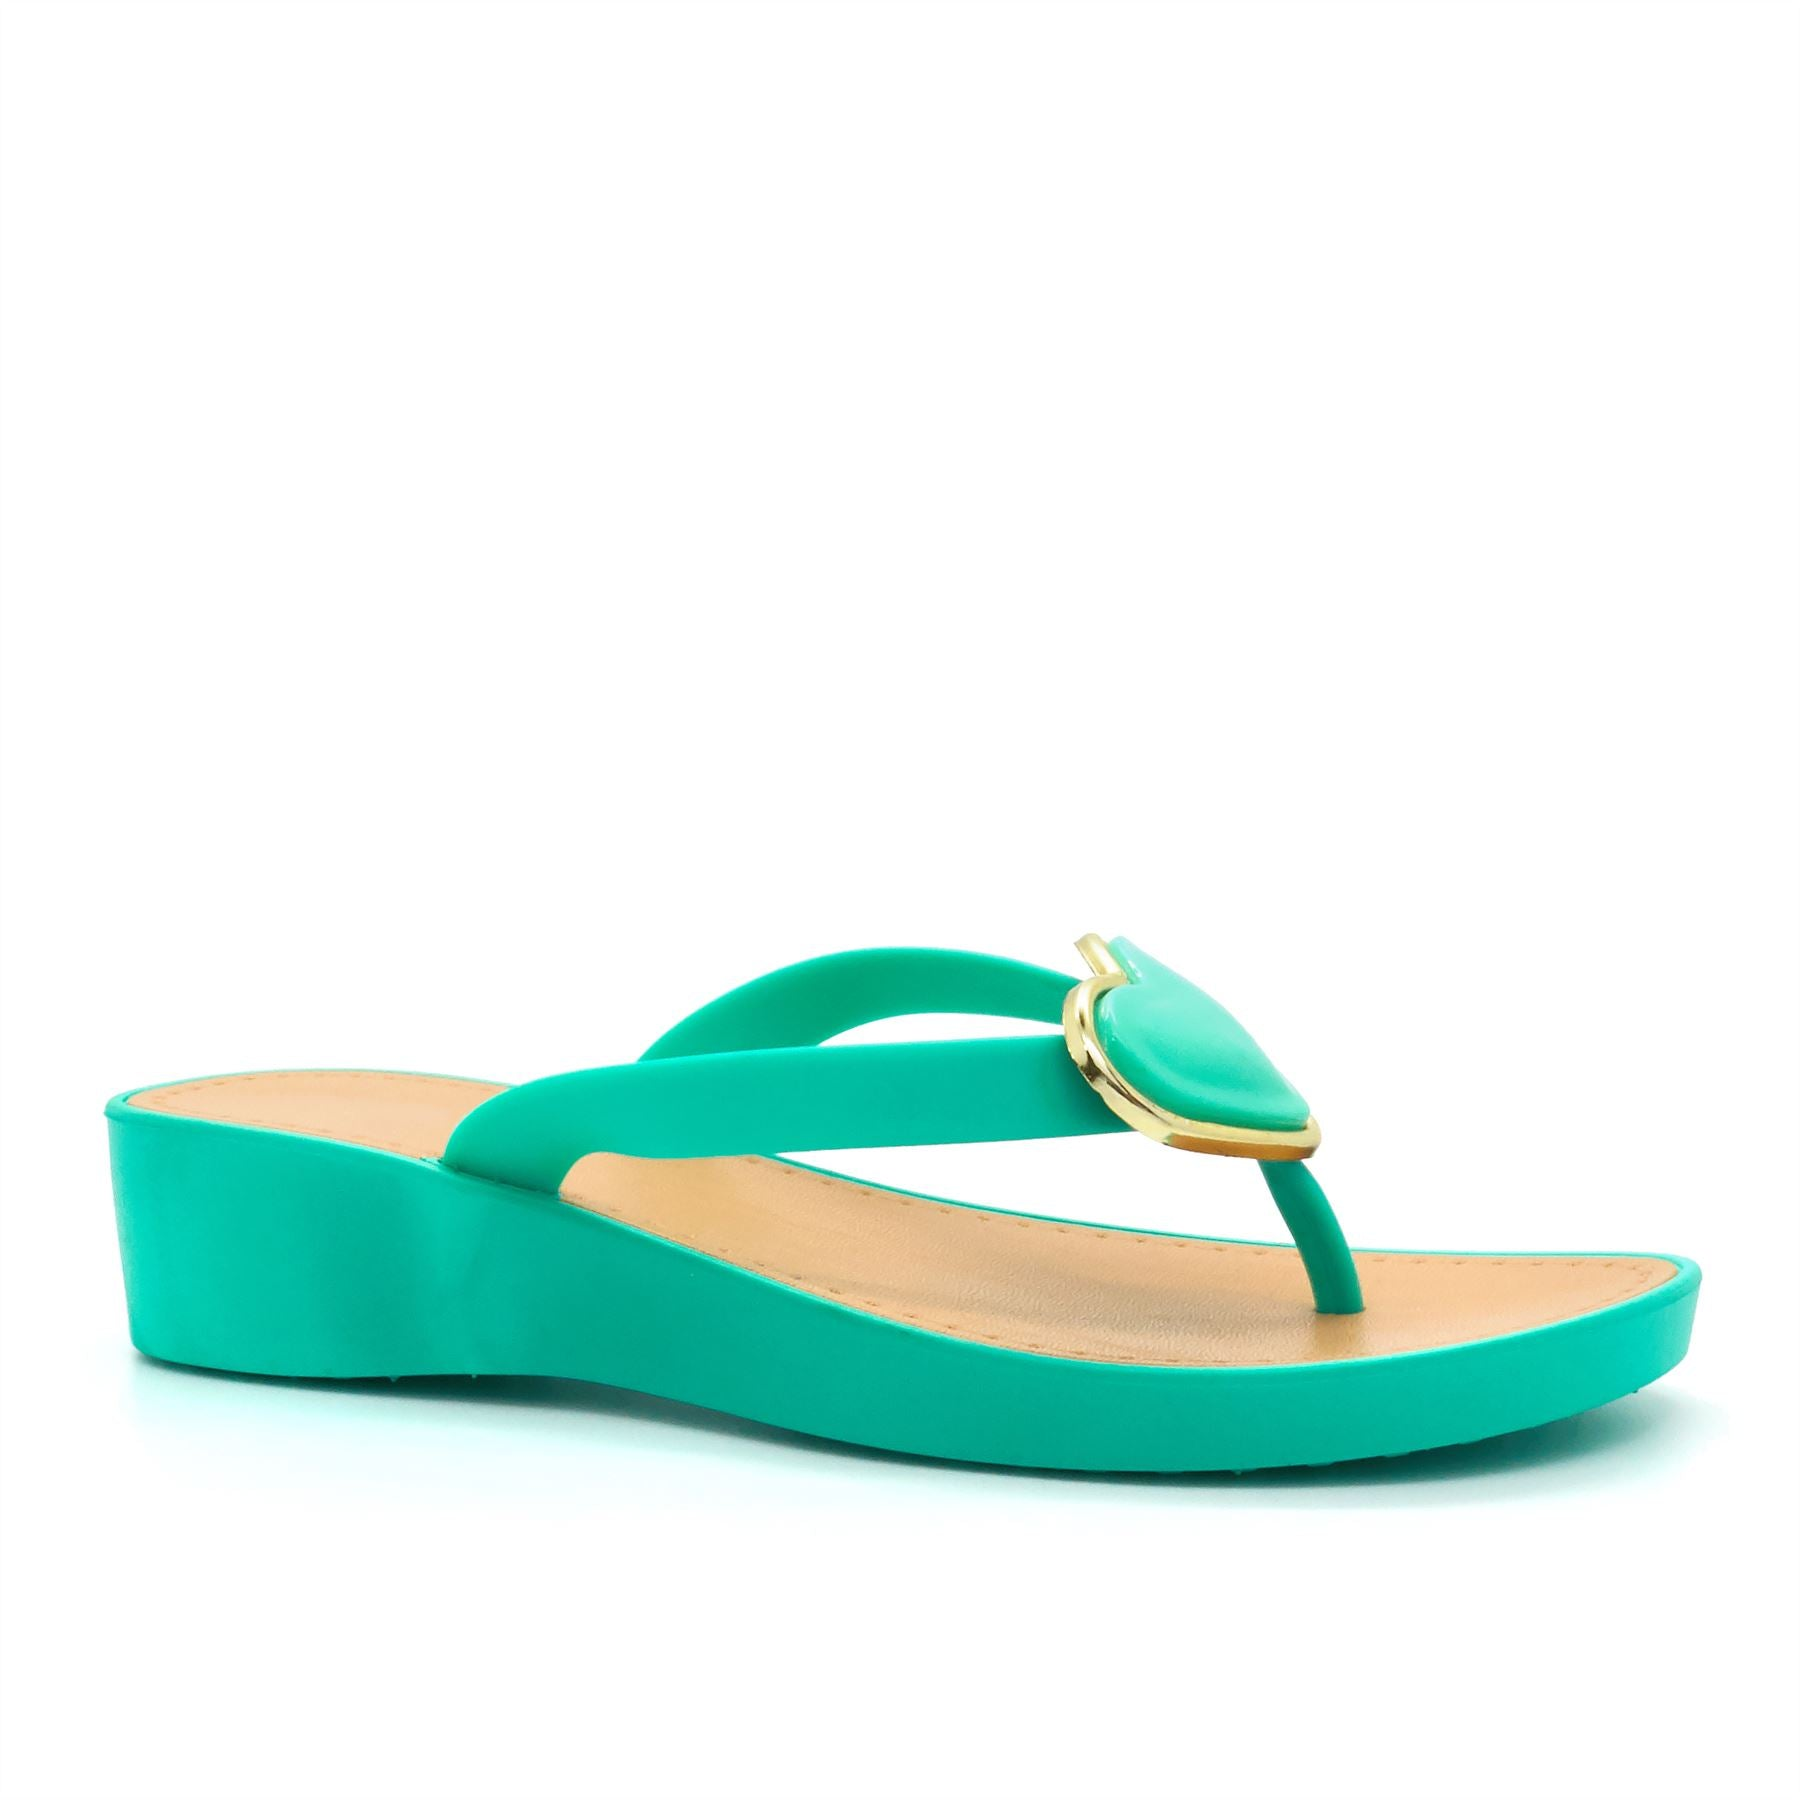 Turquoise Heart Brooch Wedge Heeled Flip Flops